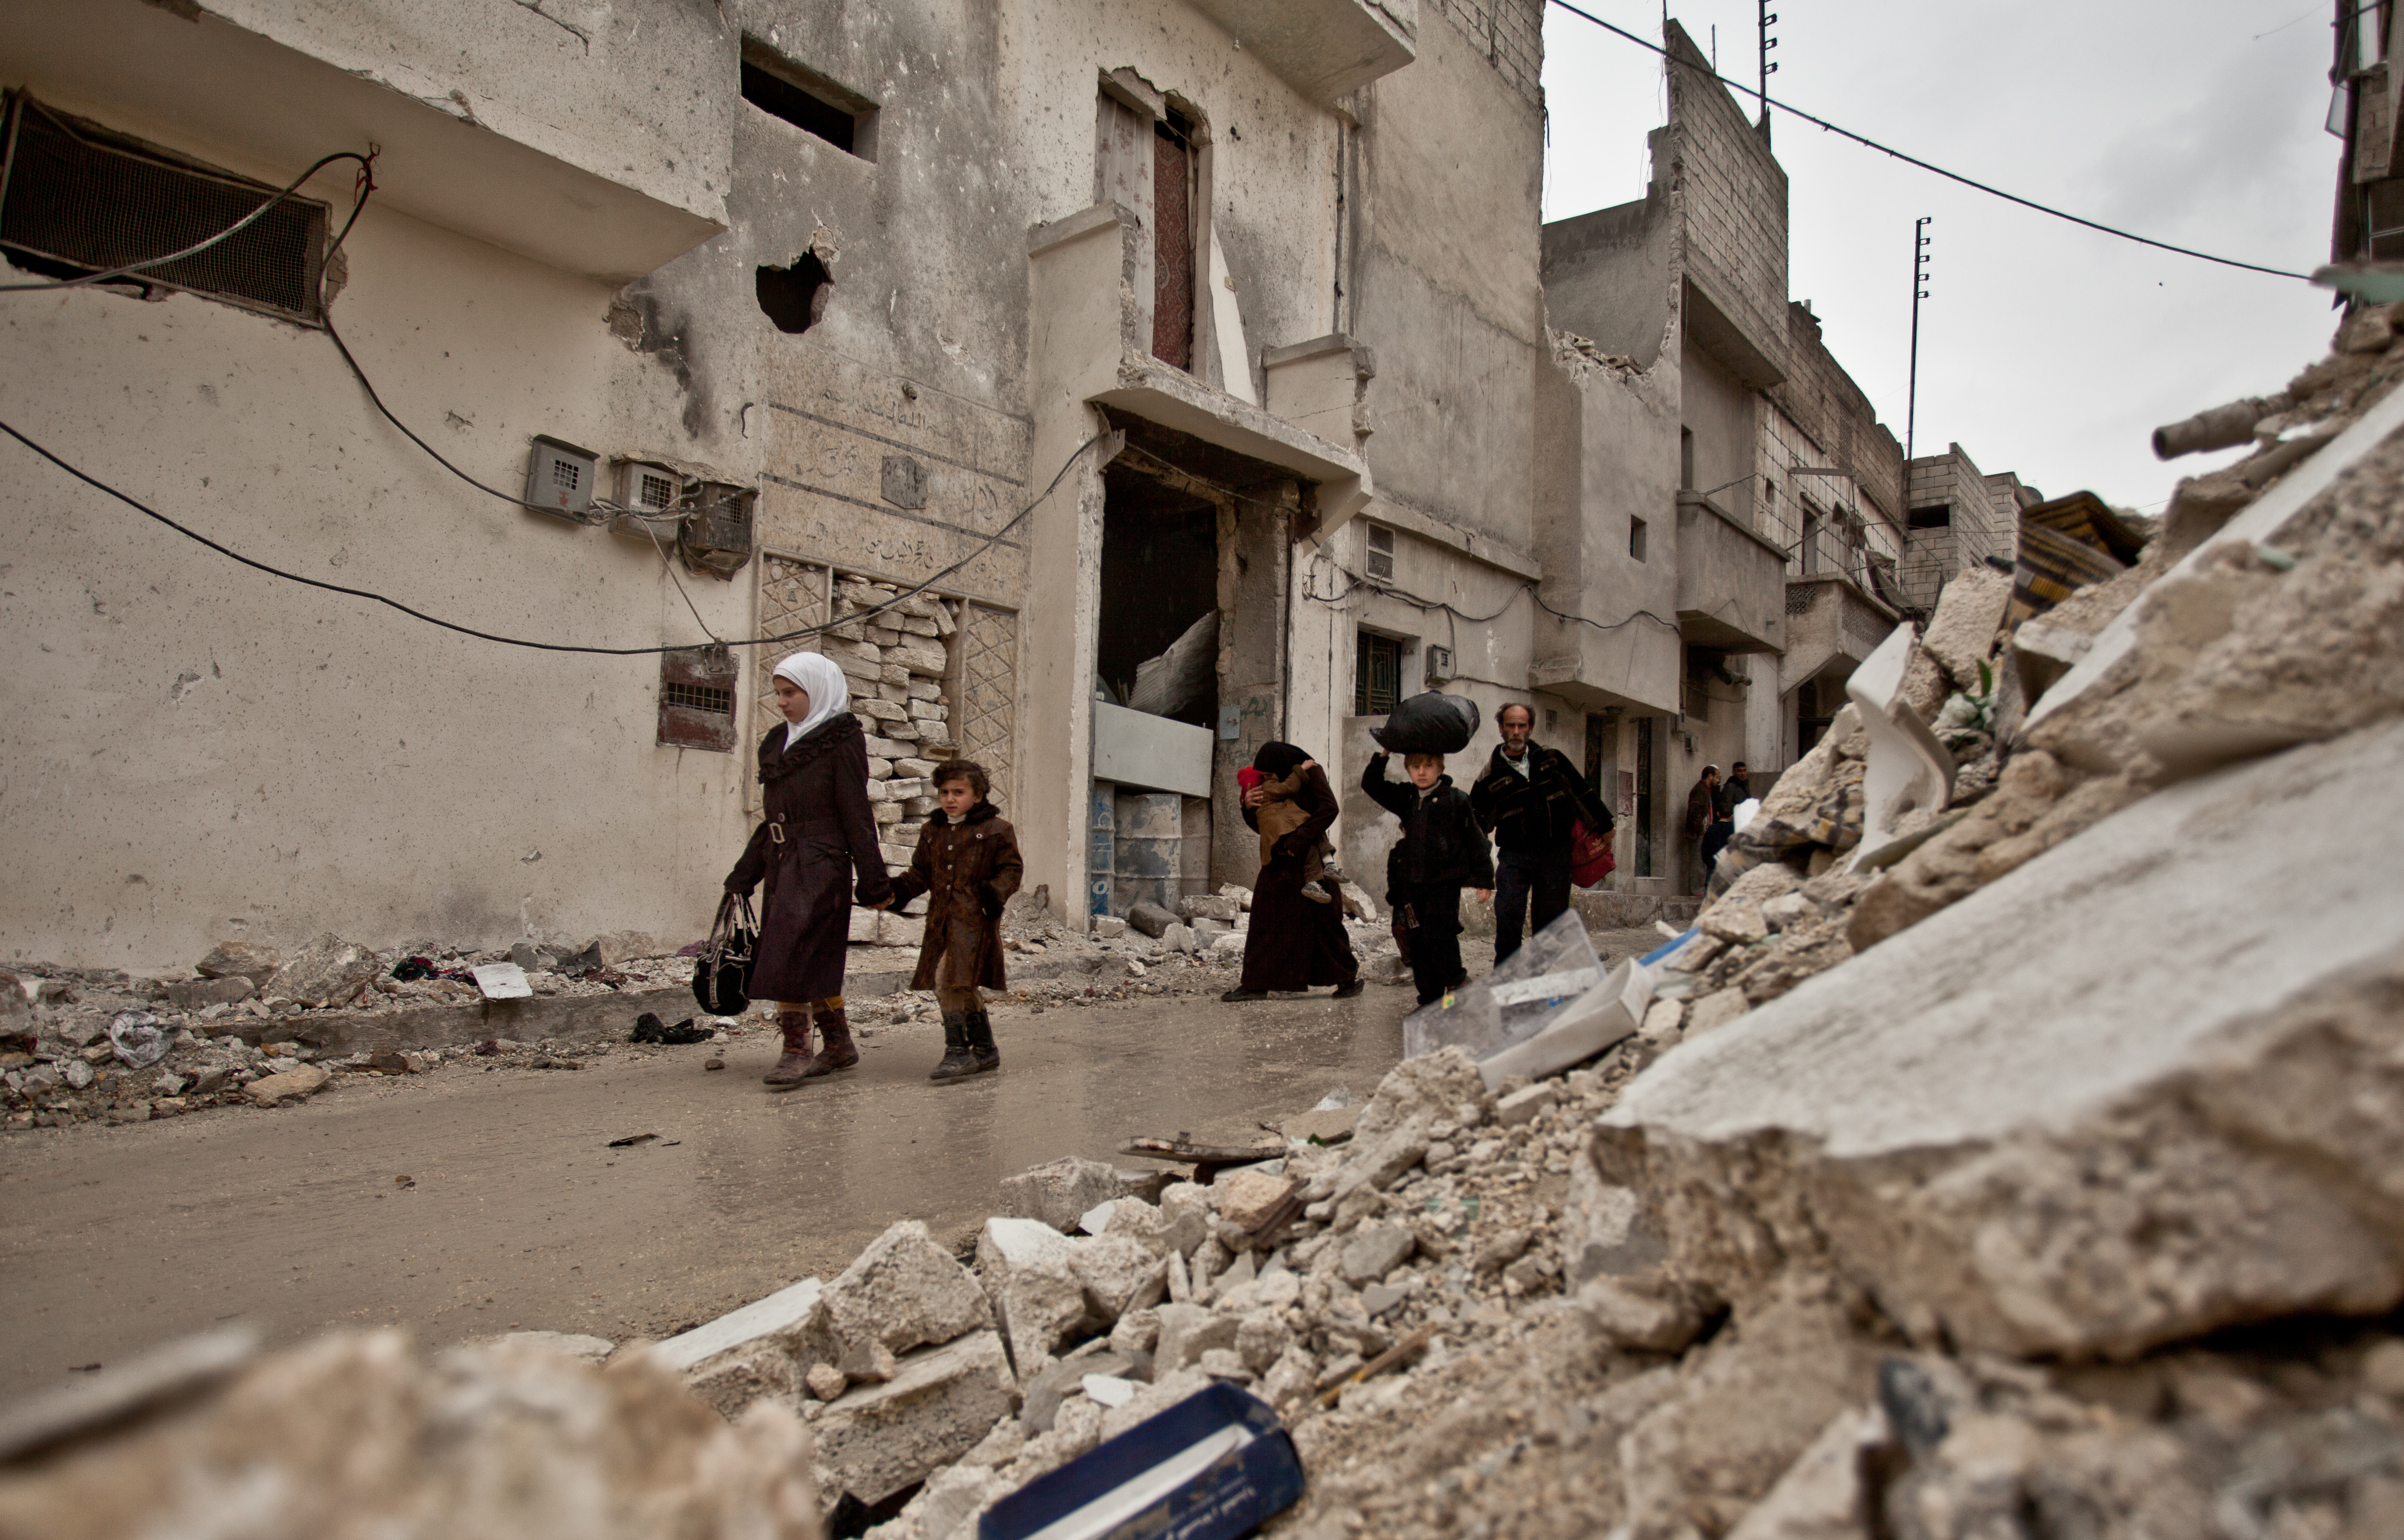 The remains of a neighbourhood that was hit by a missile in Syria. Image: Pablo Tosco